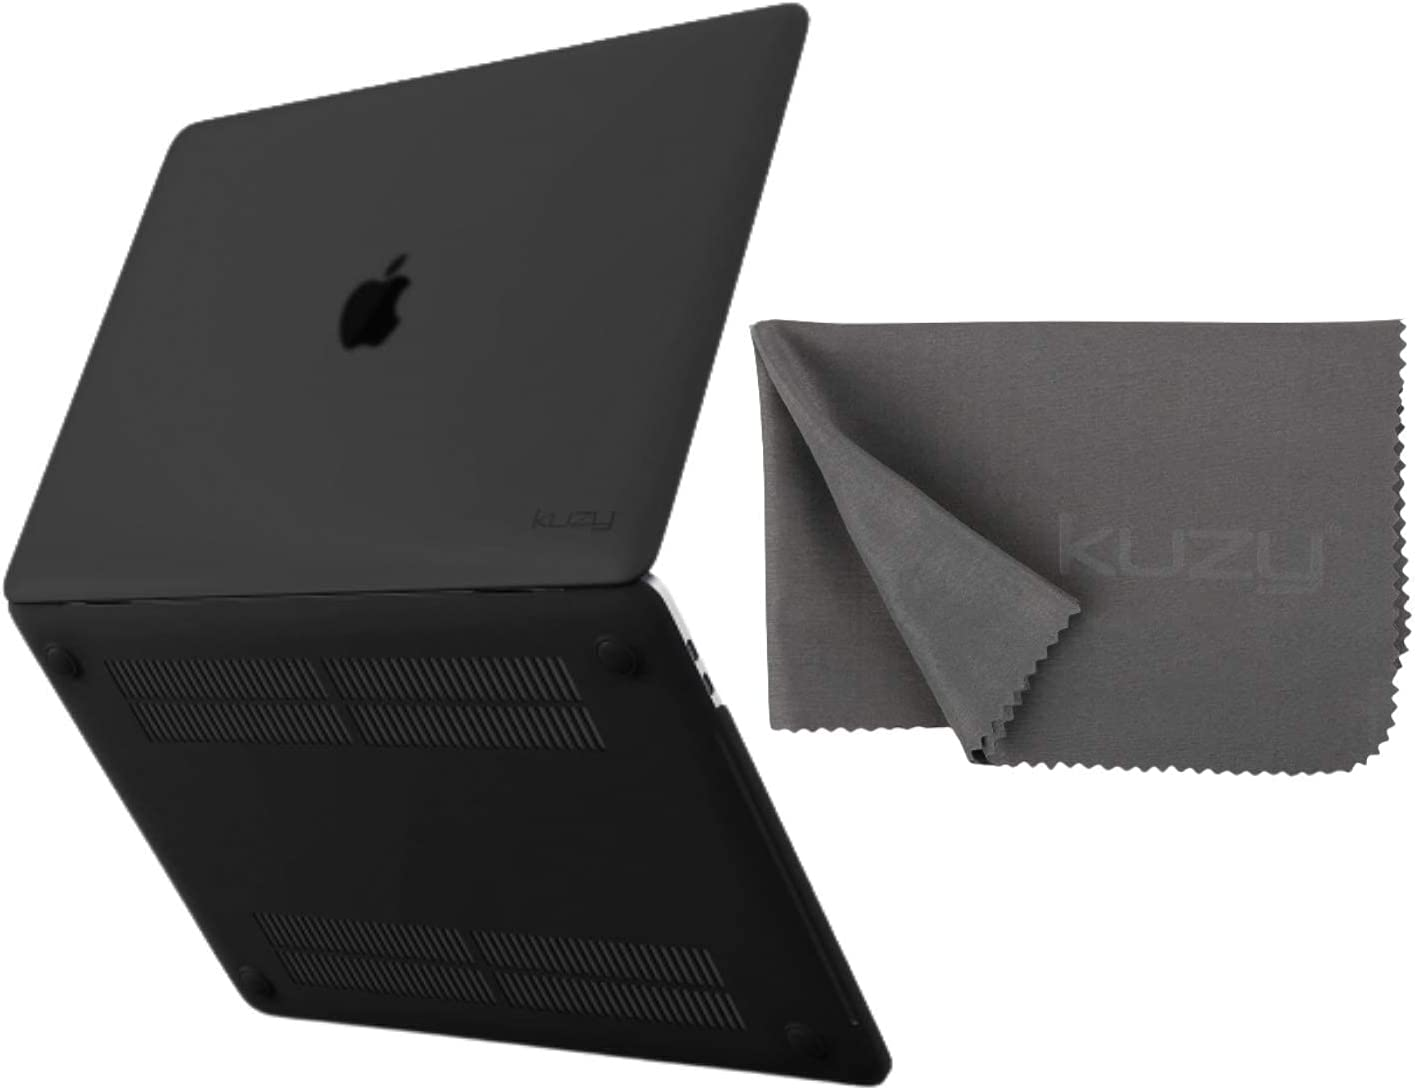 Kuzy Compatible with MacBook Pro 13 inch Case with Microfiber Keyboard Cover Cloth 2020 2019 2018 2017 2016 Release A2338 M1 A2289 A2251 A2159 A1989 A1706 A1708, Non-Slip